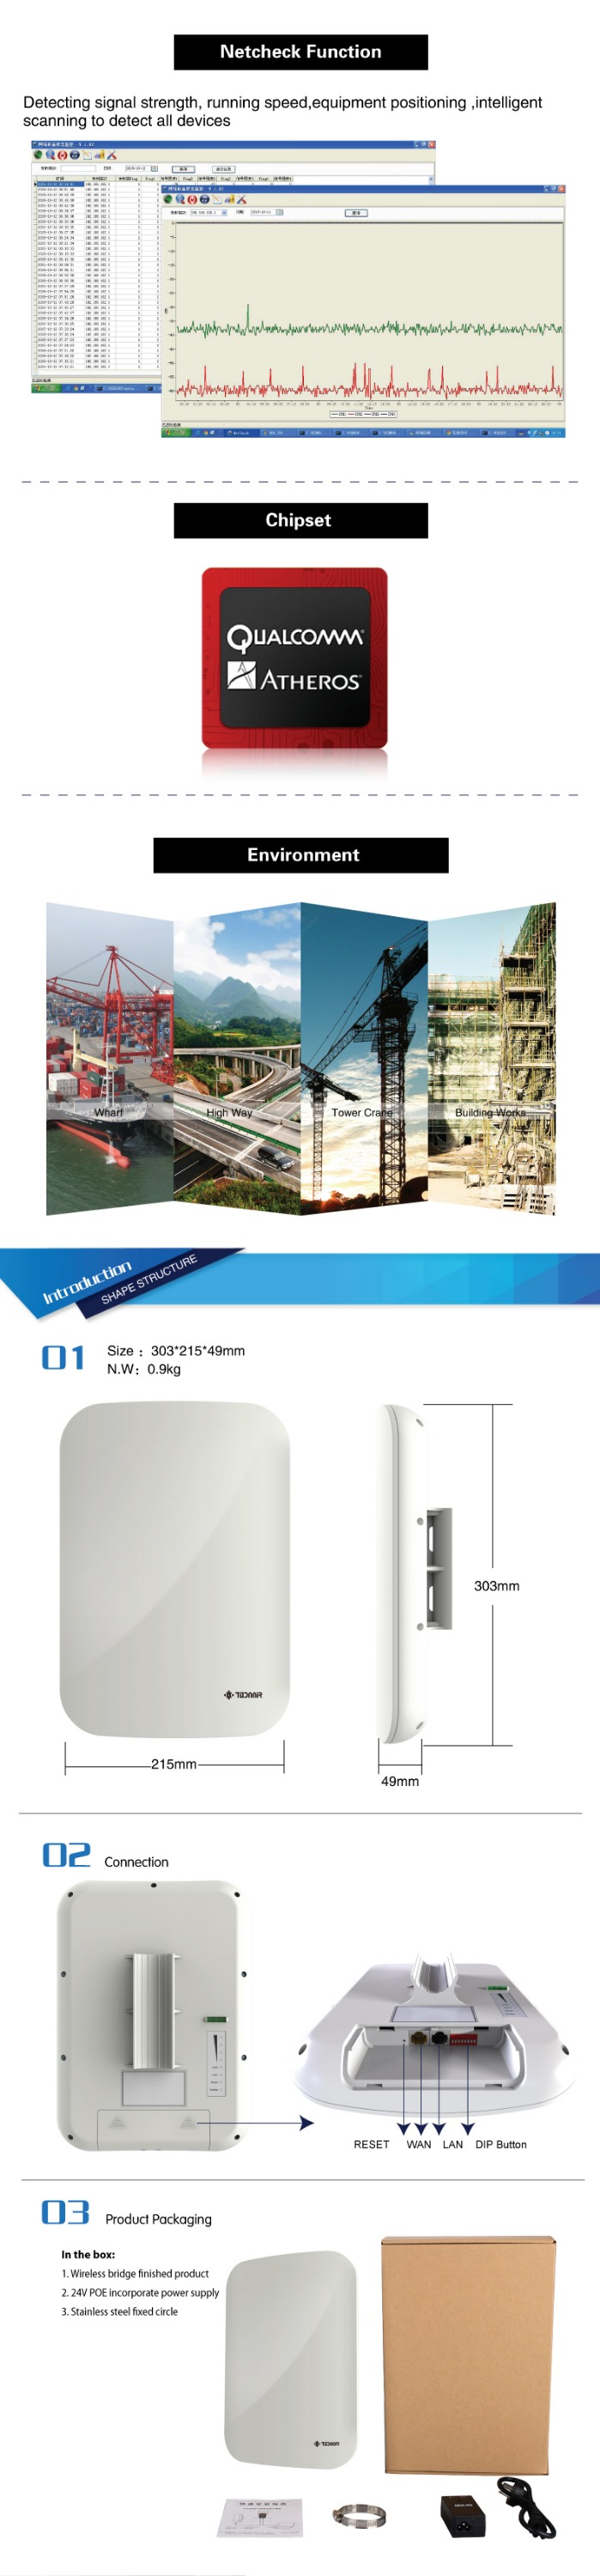 Todaair High Power 300Mbps 5km Wireless AP Router Bridge Signal Booster for IP Camera Monitoring Network Device